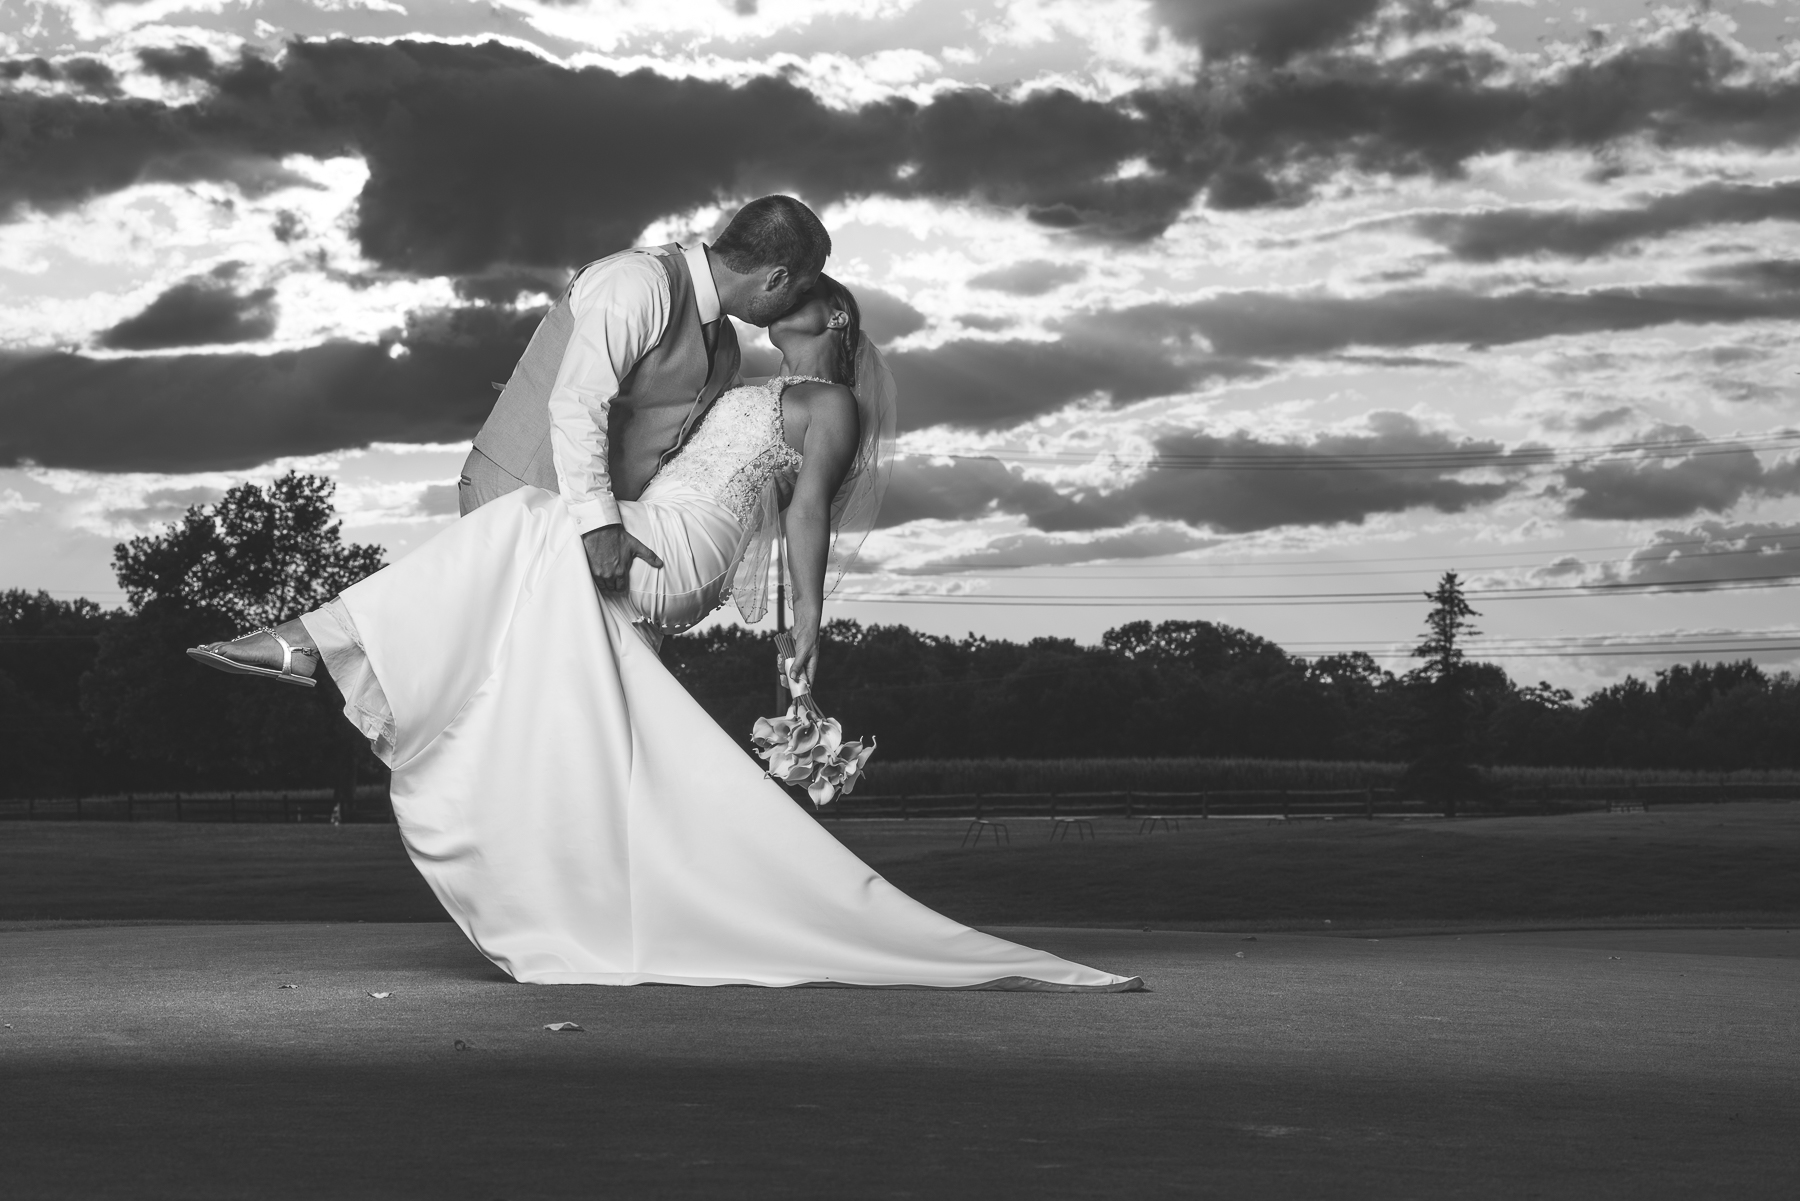 Black and white wedding photo on the Bridges Golf Course at sunset.